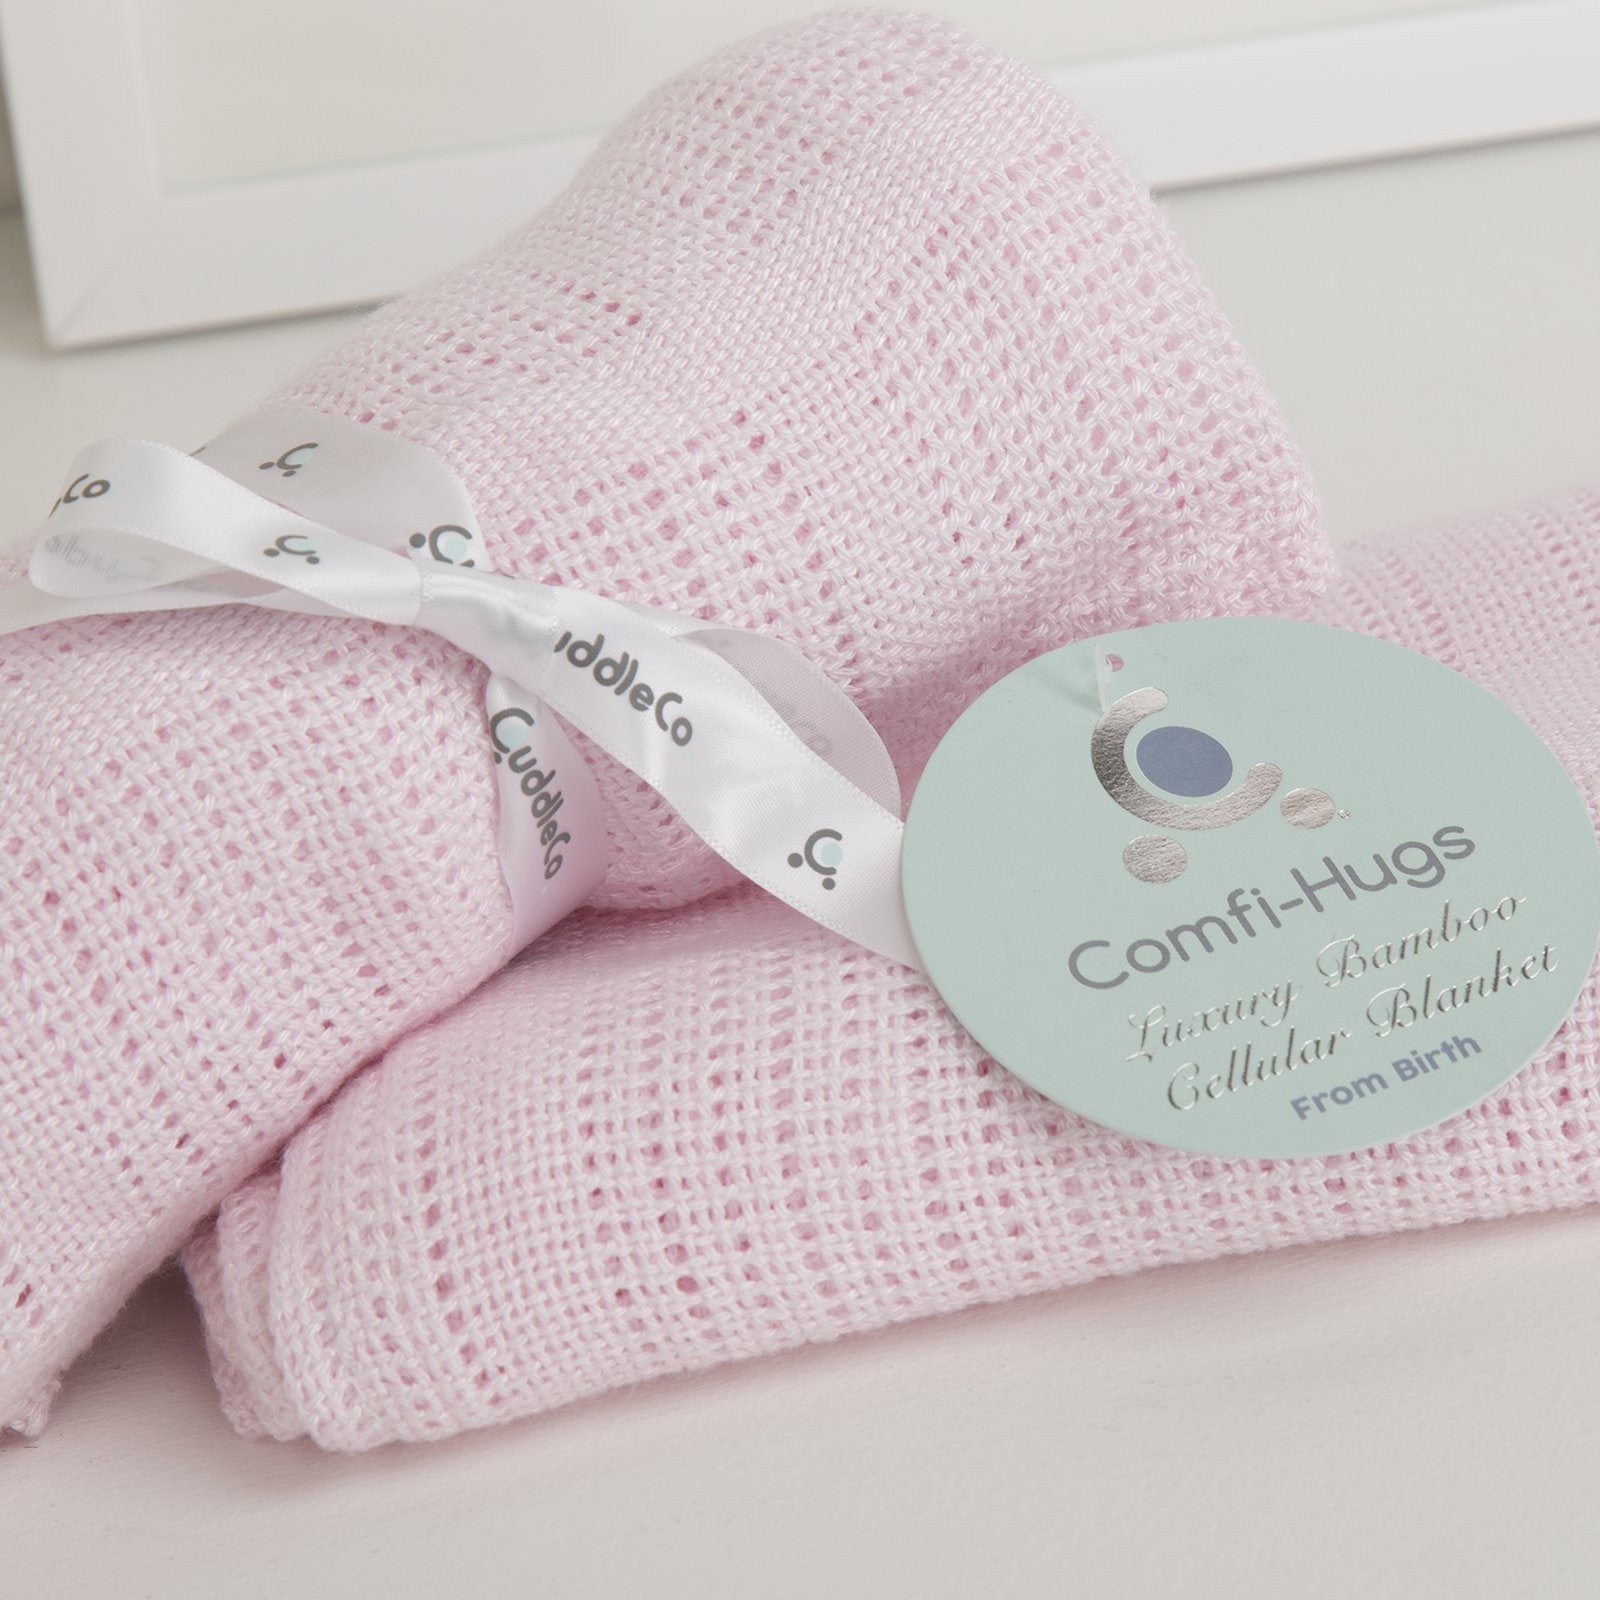 Comfi-Hugs Luxury Bamboo Cellular Blanket - Pink Nursery cuddleco